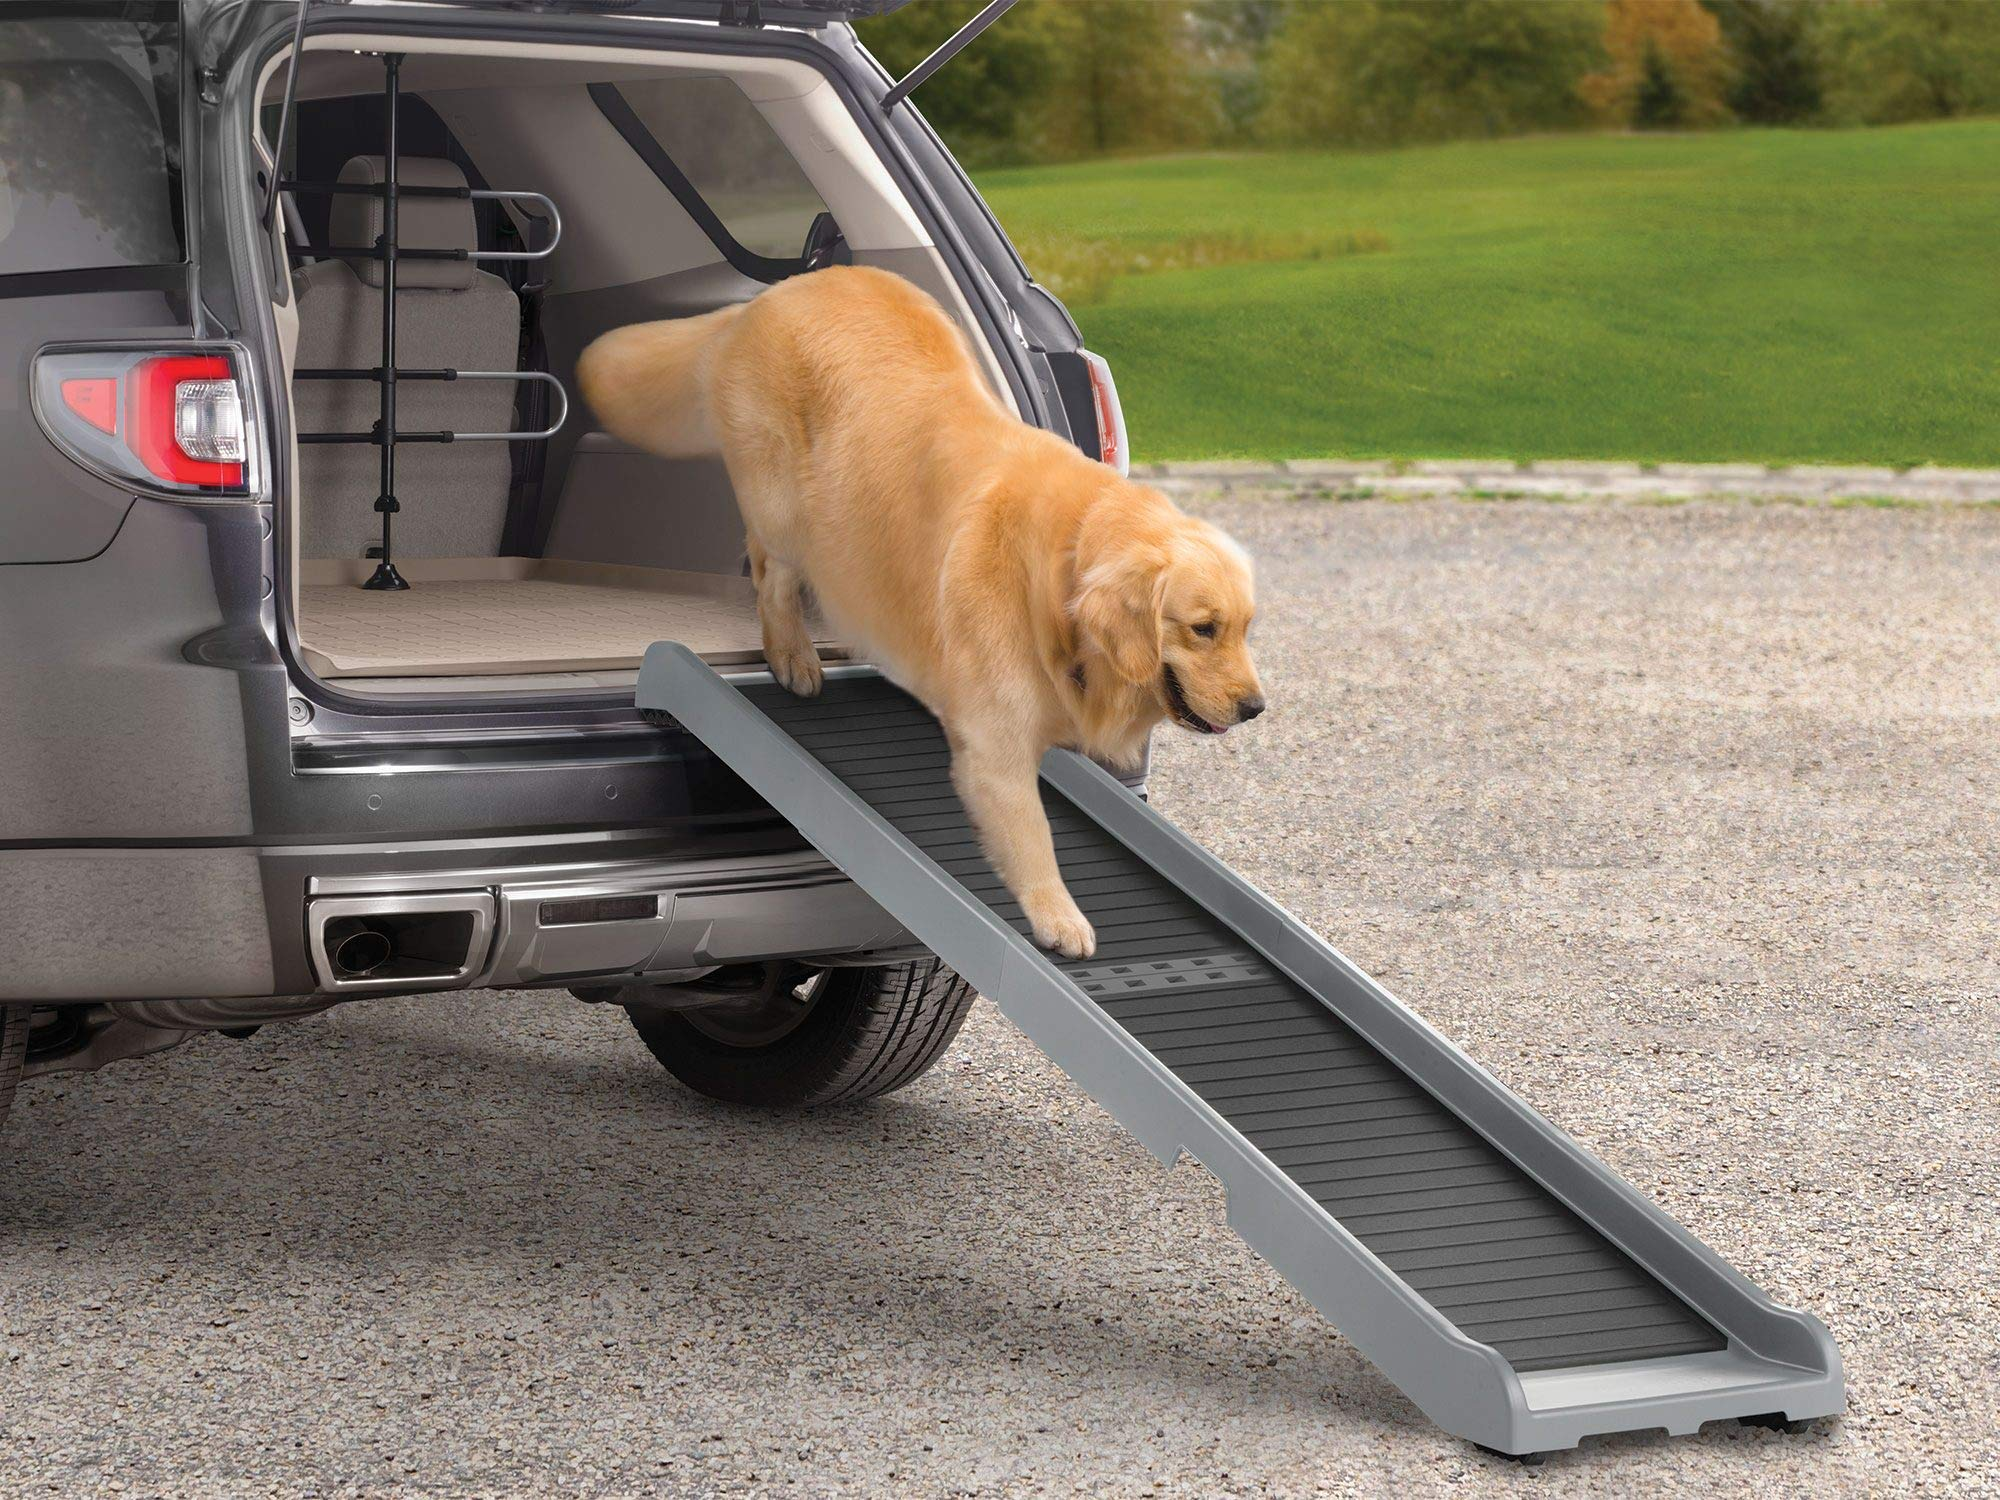 WeatherTech PetRamp - High-Traction Foldable Pet Ramp by WeatherTech